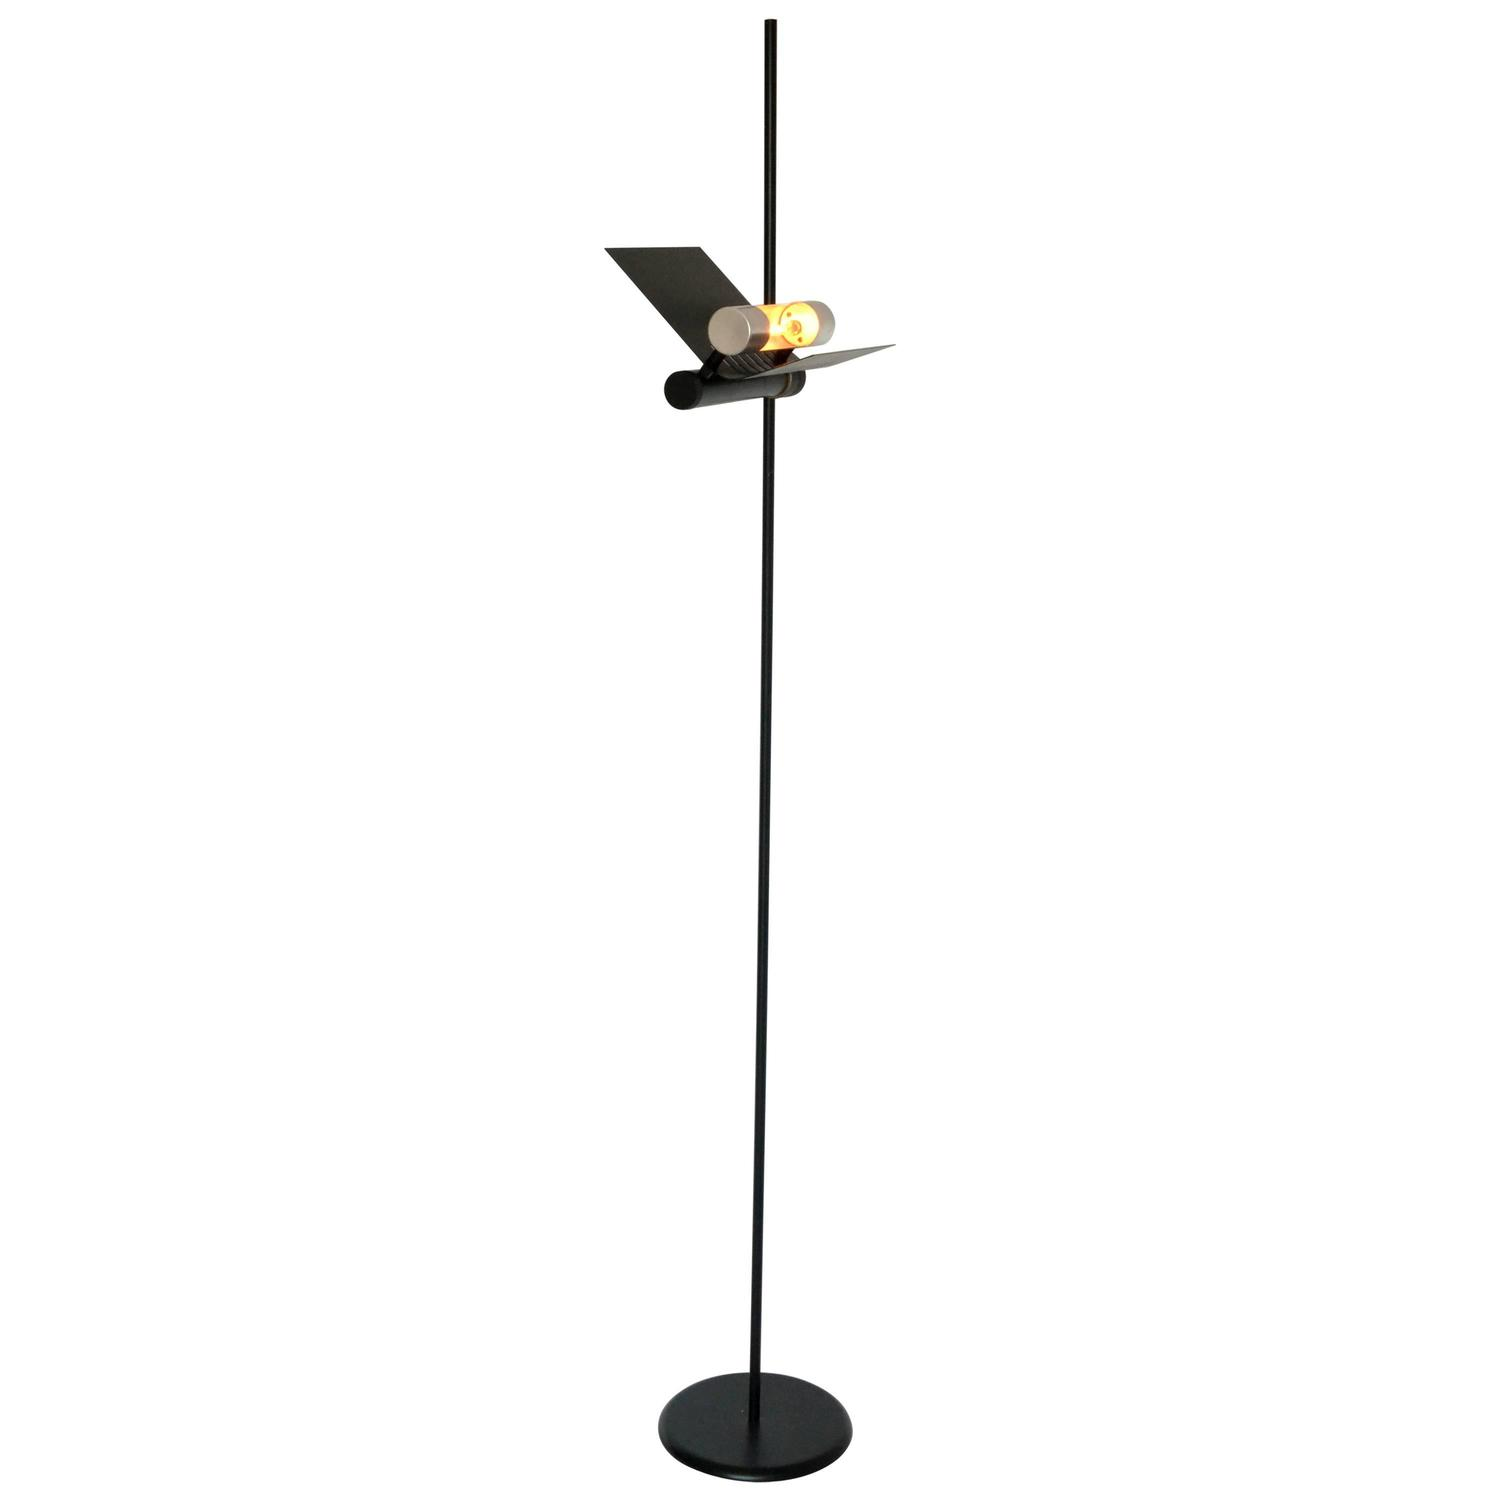 sn n the halogen home depot nickel satin designers compressed lighting floor lamp choice lamps collection b